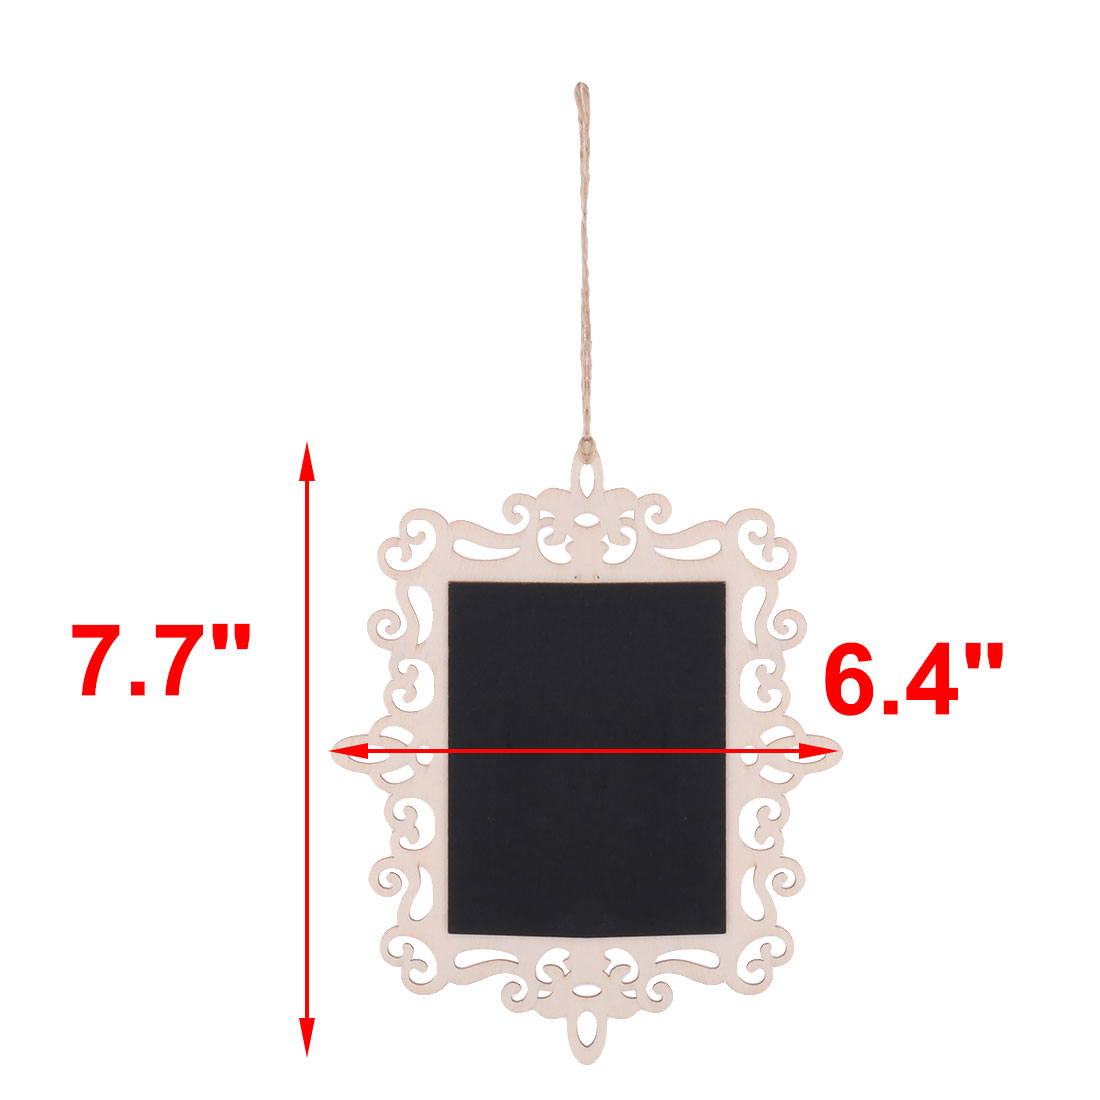 Family Wood Wavy Rectangle Decoration Message Standing Table Blackboard 5 Pcs - image 3 of 4